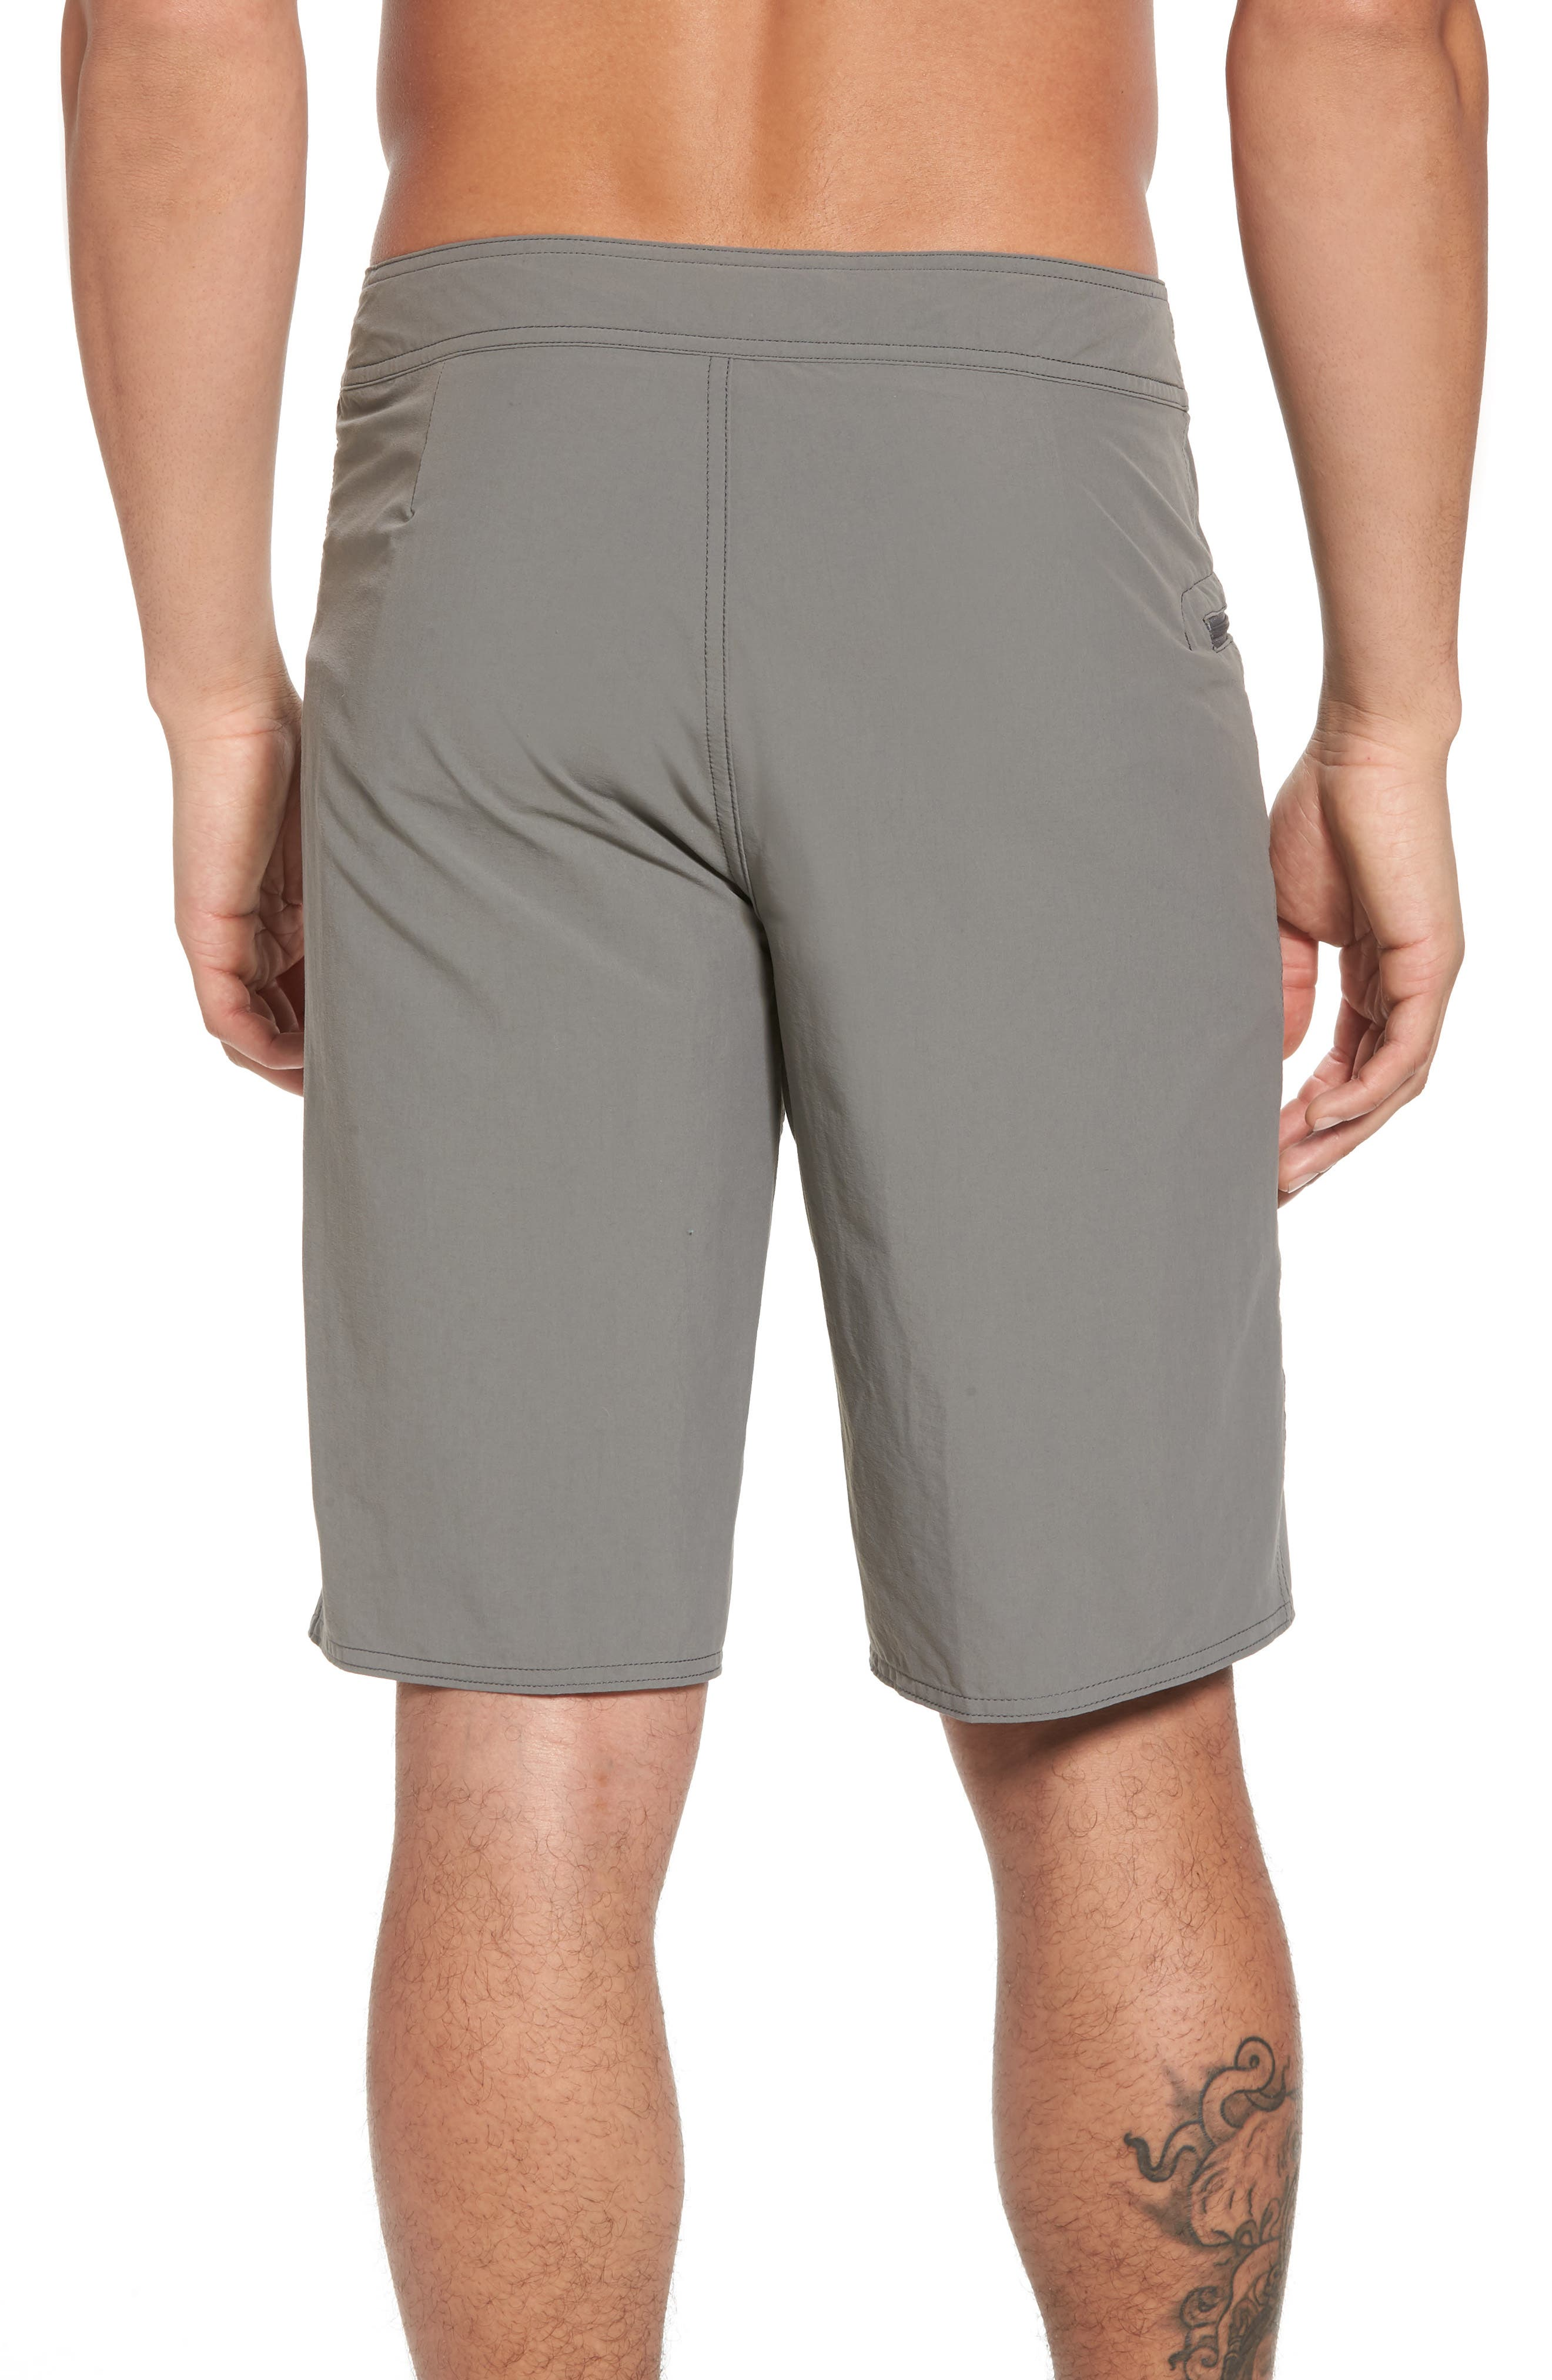 Wavefarer Board Shorts,                             Alternate thumbnail 2, color,                             021